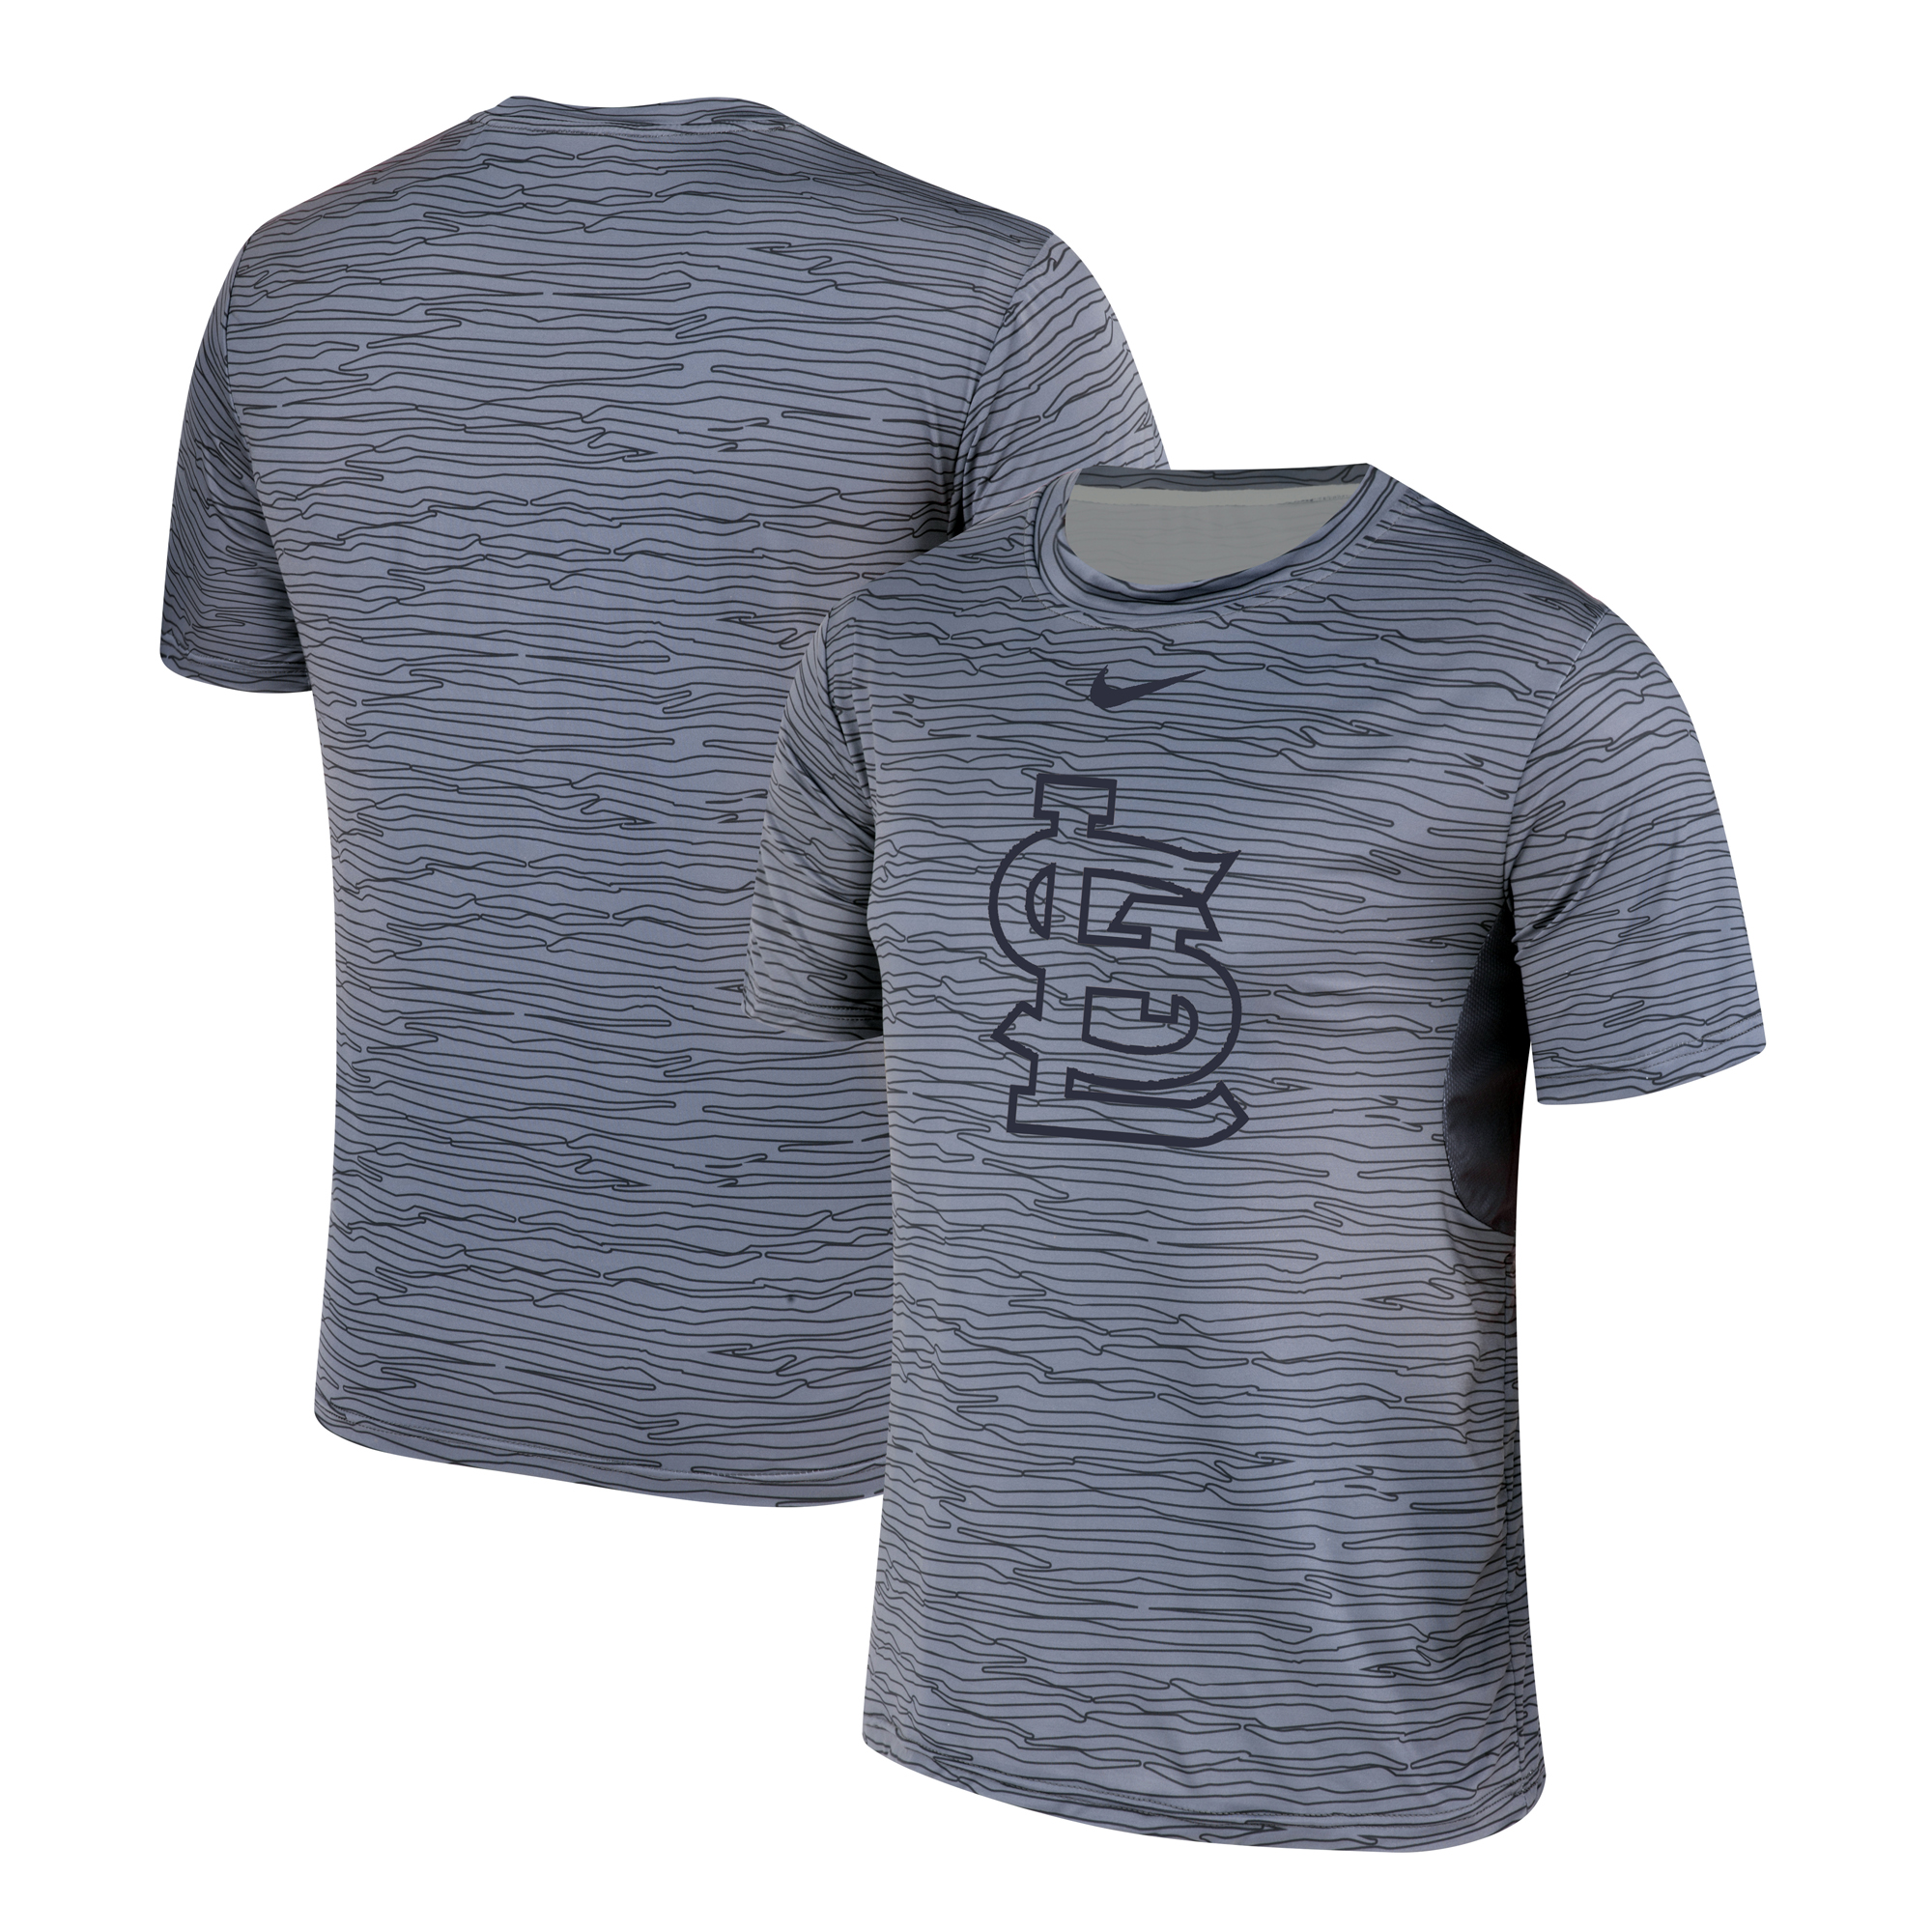 Nike St. Louis Cardinals Gray Black Striped Logo Performance T-Shirt